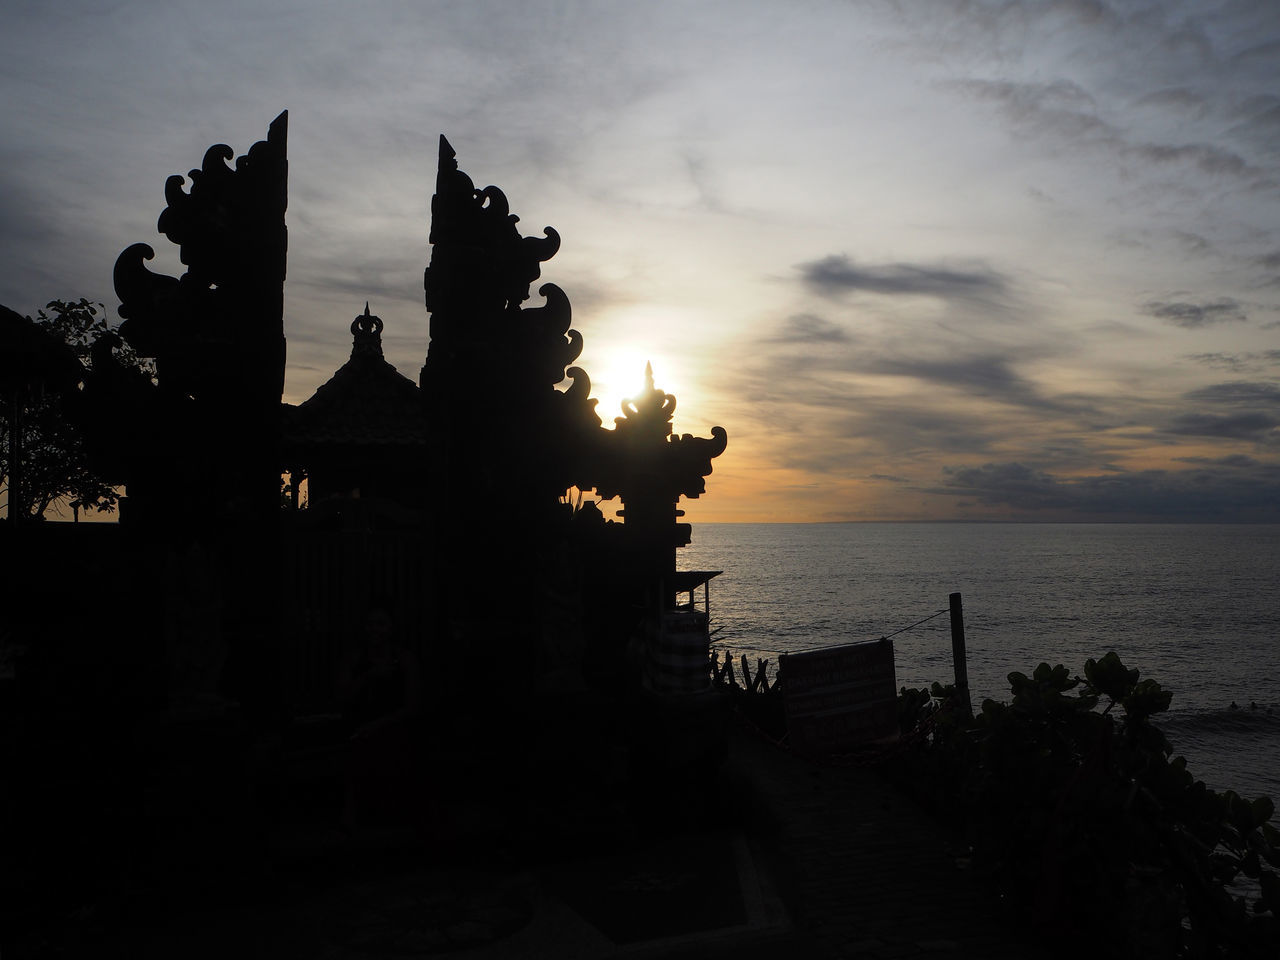 🌅Under the sun🌅 Travel Tanah Lot Bali Bali, Indonesia Art And Craft Architecture Sand Cloud - Sky Culture Dramatic Sky Exceptional Photographs EyeEmNewHere Landscapes Nature Outdoors Scenics Sea Silhouette Miles Away Still Life Sun Sunset Tadaa Community Tranquility Travel Destinations